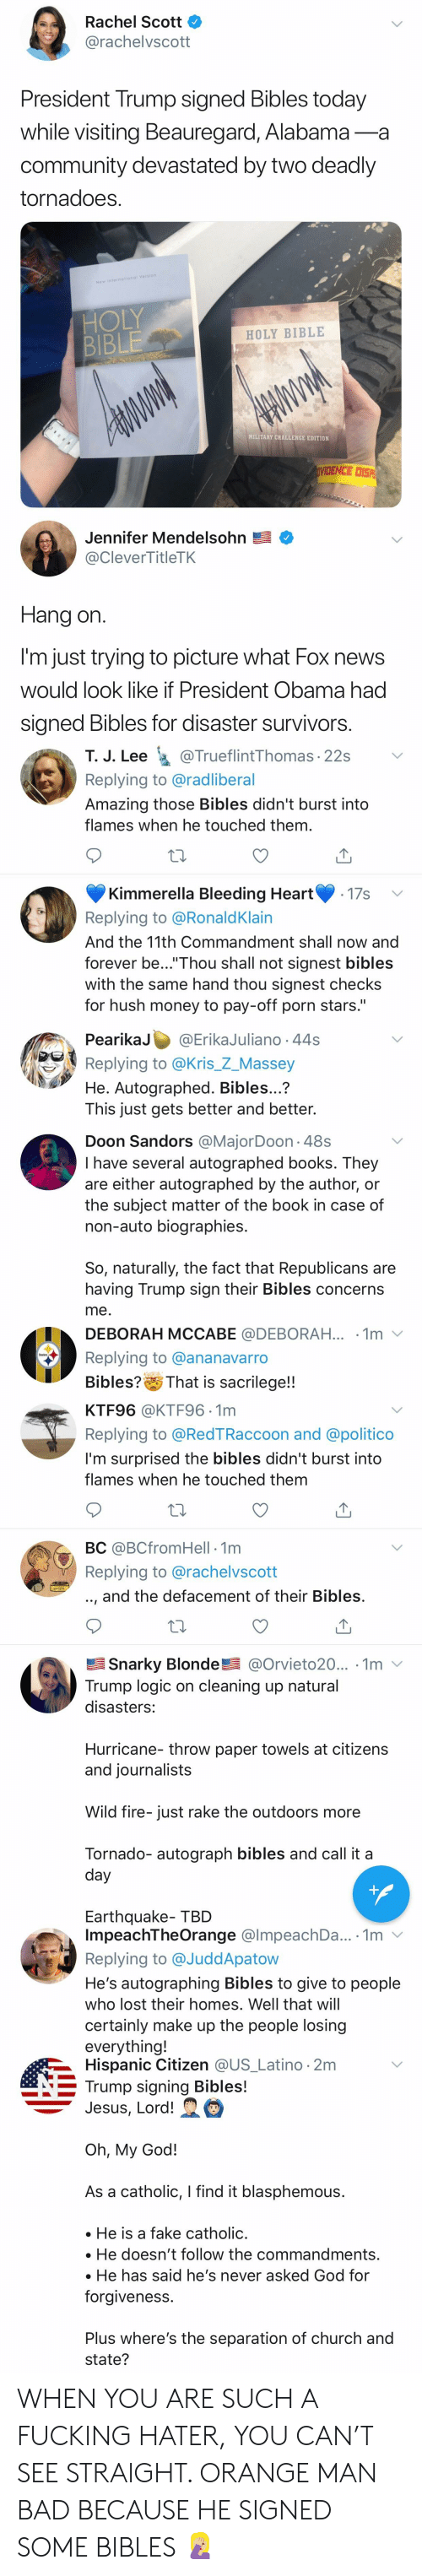 """Bad, Books, and Church: Rachel Scott  @rachelvscott  President Trump signed Bibles today  while visiting Beauregard, Alabama-a  community devastated by two deadly  tornadoes  HOLY BIBLE  BIB  Jennifer Mendelsohn  @CleverTitleTK  Hang on  I'm just trying to picture what Fox news  would look like if President Obama had  signed Bibles for disaster survivors  T. J. Lee TrueflintThomas 22s Y  Replying to @radliberal  Amazing those Bibles didn't burst into  flames when he touched them  Kimmerella Bleeding Heart17s  Replying to @RonaldKlain  And the 11th Commandment shall now and  forever be...""""Thou shall not signest bibles  with the same hand thou signest checks  for hush money to pay-off porn stars.""""  PearikaJ @Erika Juliano 44s  Replying to @Kris_Z_Massey  He. Autographed. Bibles...?  This just gets better and better.  Doon Sandors @MajorDoon-48s  I have several autographed books. They  are either autographed by the author, or  the subject matter of the book in case of  non-auto biographies  So, naturally, the fact that Republicans are  having Trump sign their Bibles concerns  me  DEBORAH MCCABE @DEBORAH... 1m  Replying to @ananavarro  Bibles? That is sacrilege!!  KTF96 @KTF96.1m  Replying to @RedTRaccoon and @politico  I'm surprised the bibles didn't burst into  flames when he touched them  BC @BCfromHell -1m  Replying to @rachelvscott  .., and the defacement of their Bibles  Snarky Blonde@Orvieto20... 1m  Trump logic on cleaning up natural  disasters  Hurricane- throw paper towels at citizens  and journalists  Wild fire-just rake the outdoors more  Tornado- autograph bibles and call it a  Earthquake TBD  ImpeachTheOrange @lmpeachDa... .1m v  Replying to @JuddApatow  He's autographing Bibles to give to people  who lost their homes. Well that will  certainly make up the people losing  everything!  Hispanic Citizen @US Latino.2m  Trump signing Bibles!  Jesus, Lord!  Oh, My God!  As a catholic, I find it blasphemous  He is a fake catholic  He doesn't follow the commandmen"""